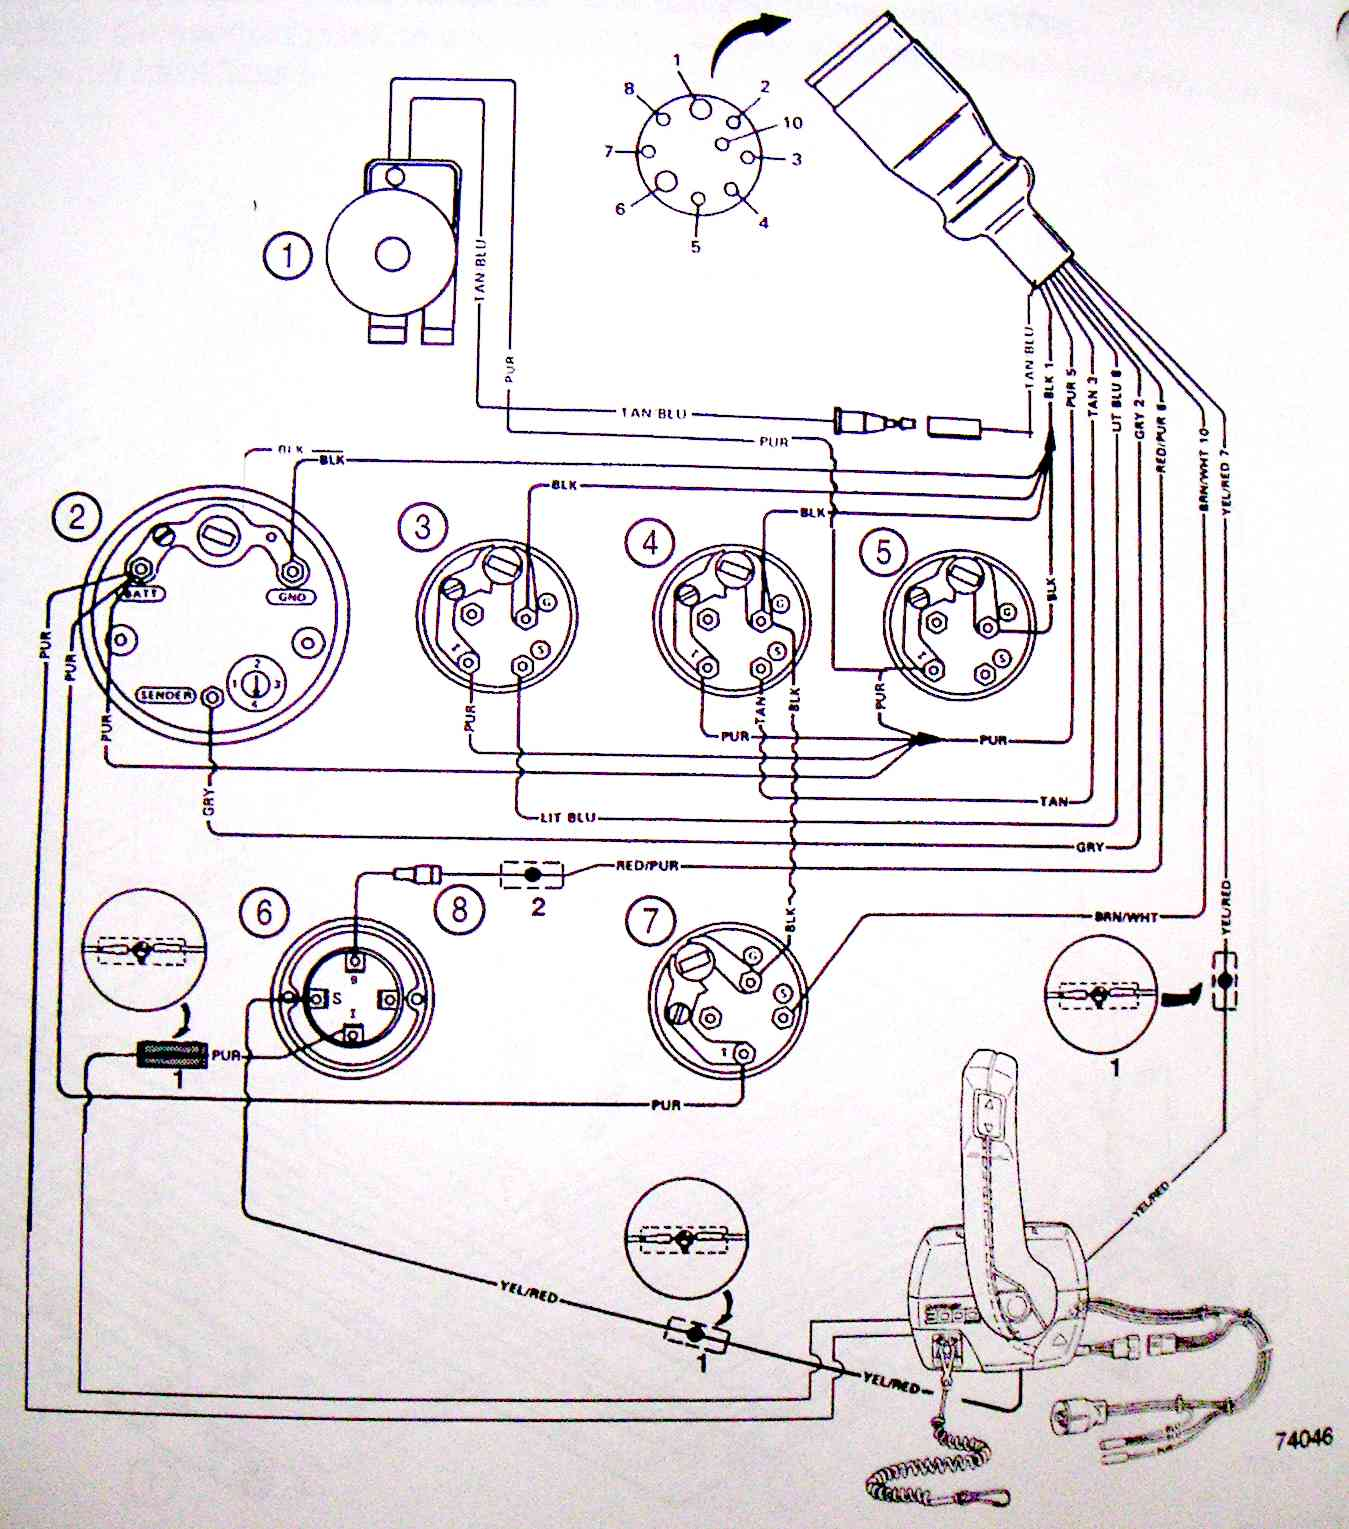 BoatHarness74046 yamaha outboard motor wiring diagrams the wiring diagram mercury outboard trim gauge wiring diagram at eliteediting.co